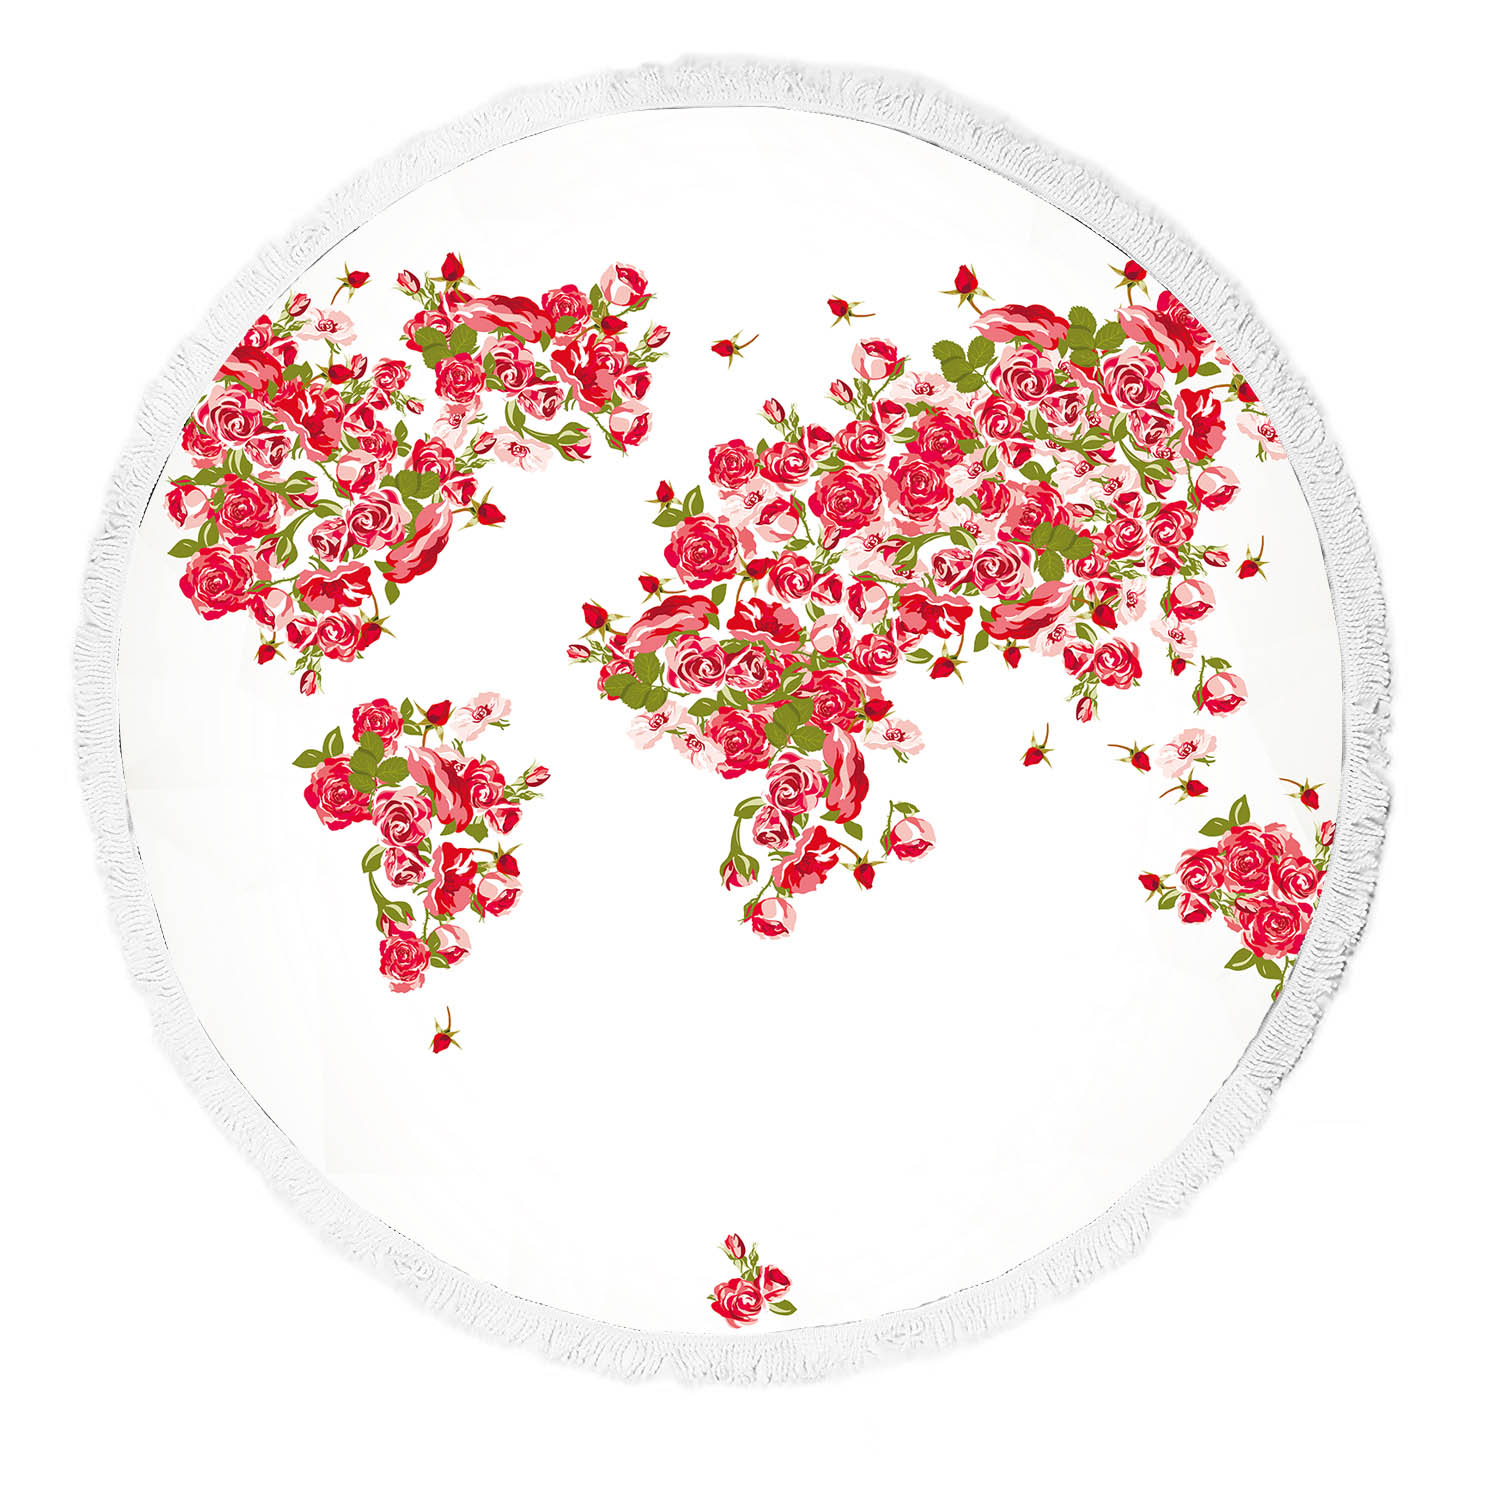 YKCG Vintage Floral Rose World Map Red Pink Color Fabric Antique World Map Rose Flower Round Beach Towel Beach Mats Beach Shawl Beach Blanket with Tassels Beach Throw Towel Yoga Mat